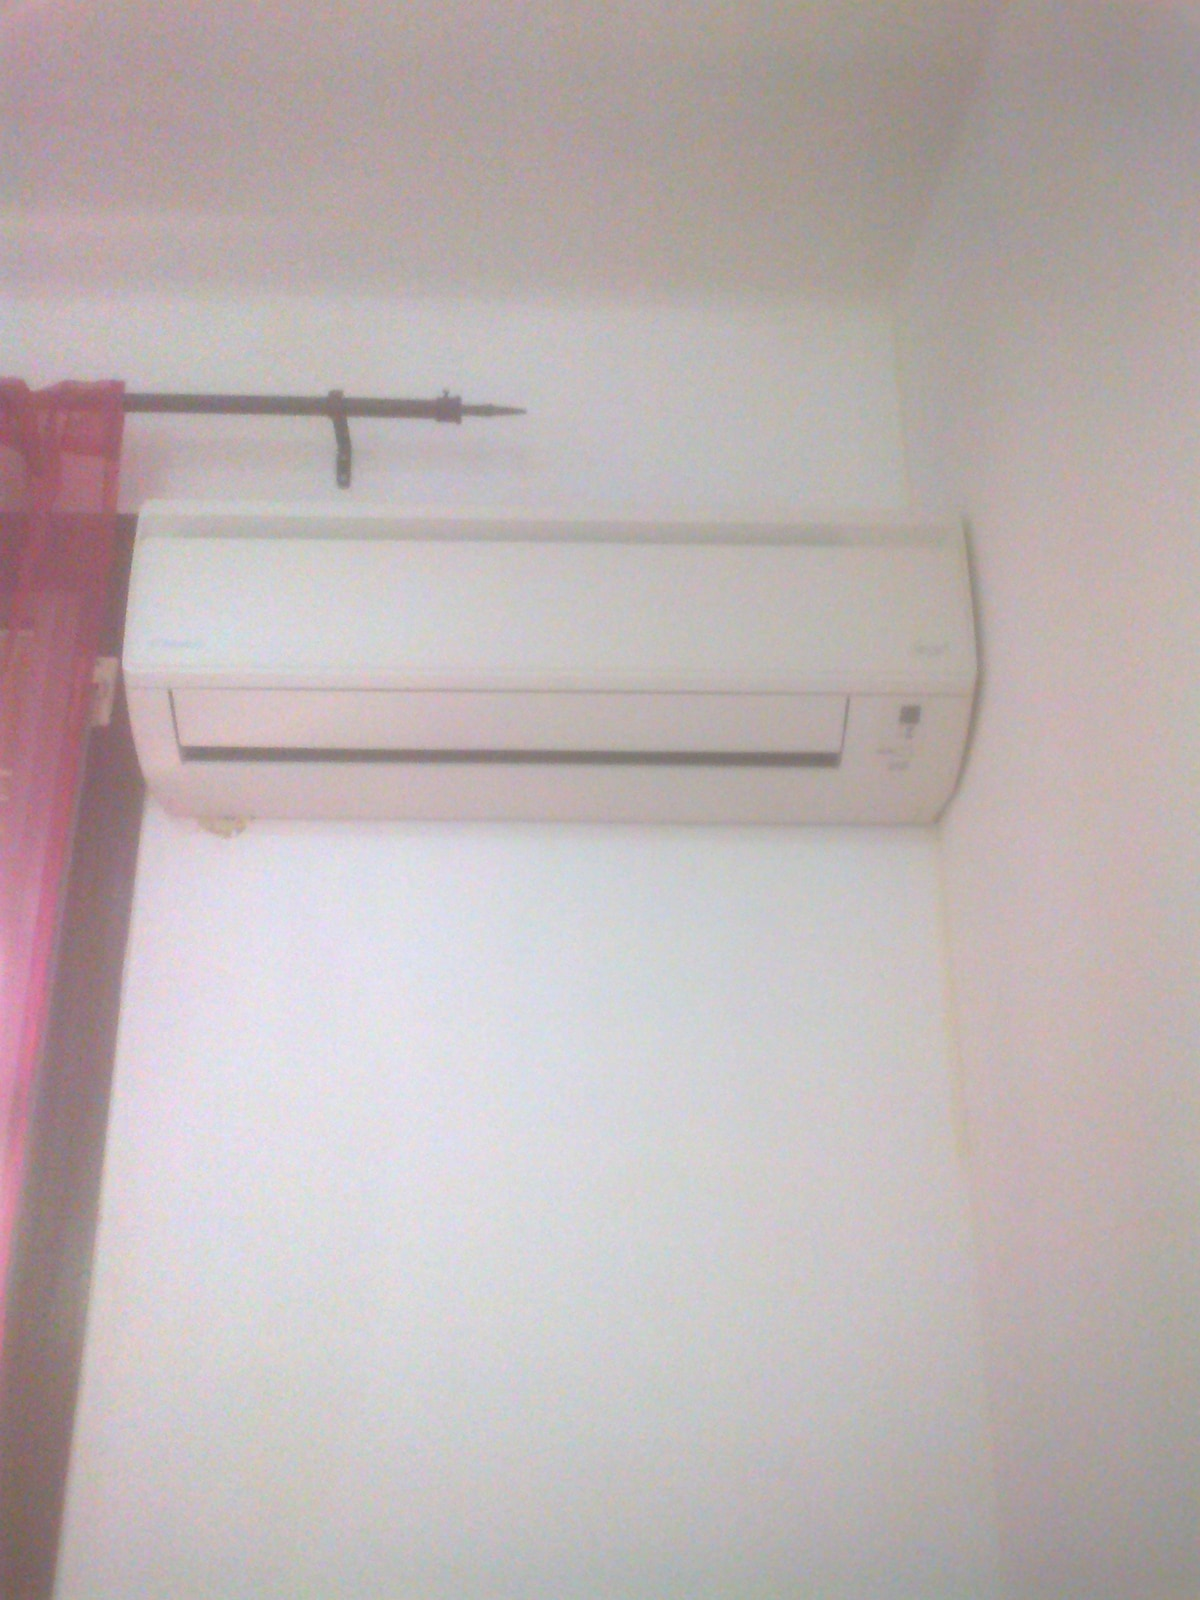 AIR-CONDITIONING: very important in Summer in Barcelona